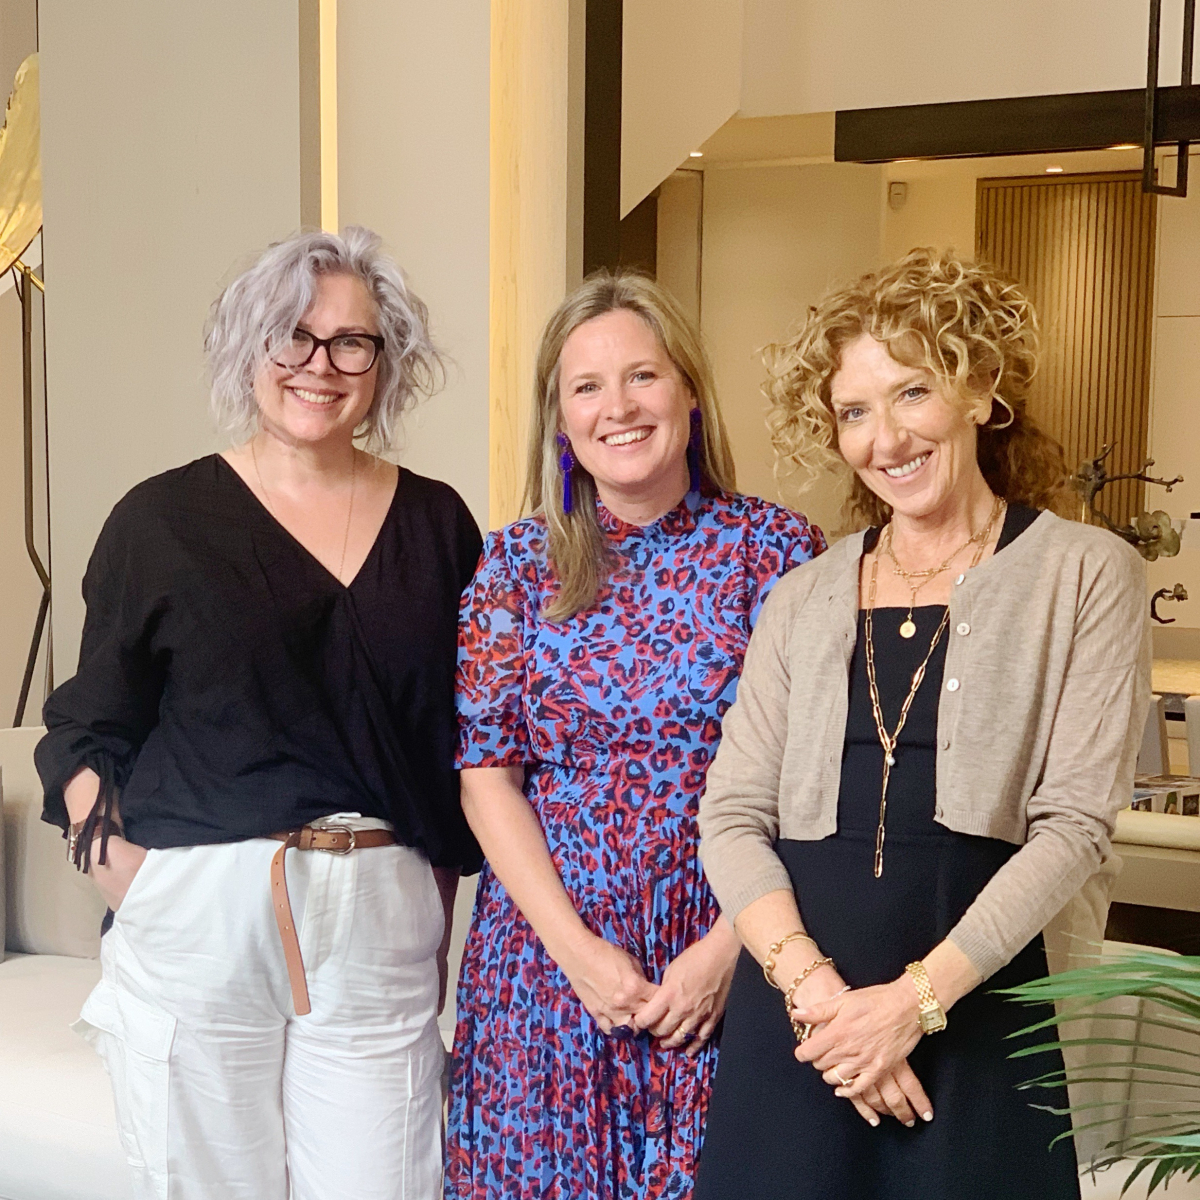 Interior designer Kelly Hoppen is interviewed about her home for the Great Indoors podcast with kate Watson Smyth and Sophie Robinson. #sophierobinson #kellyhoppen #thegreatindoors